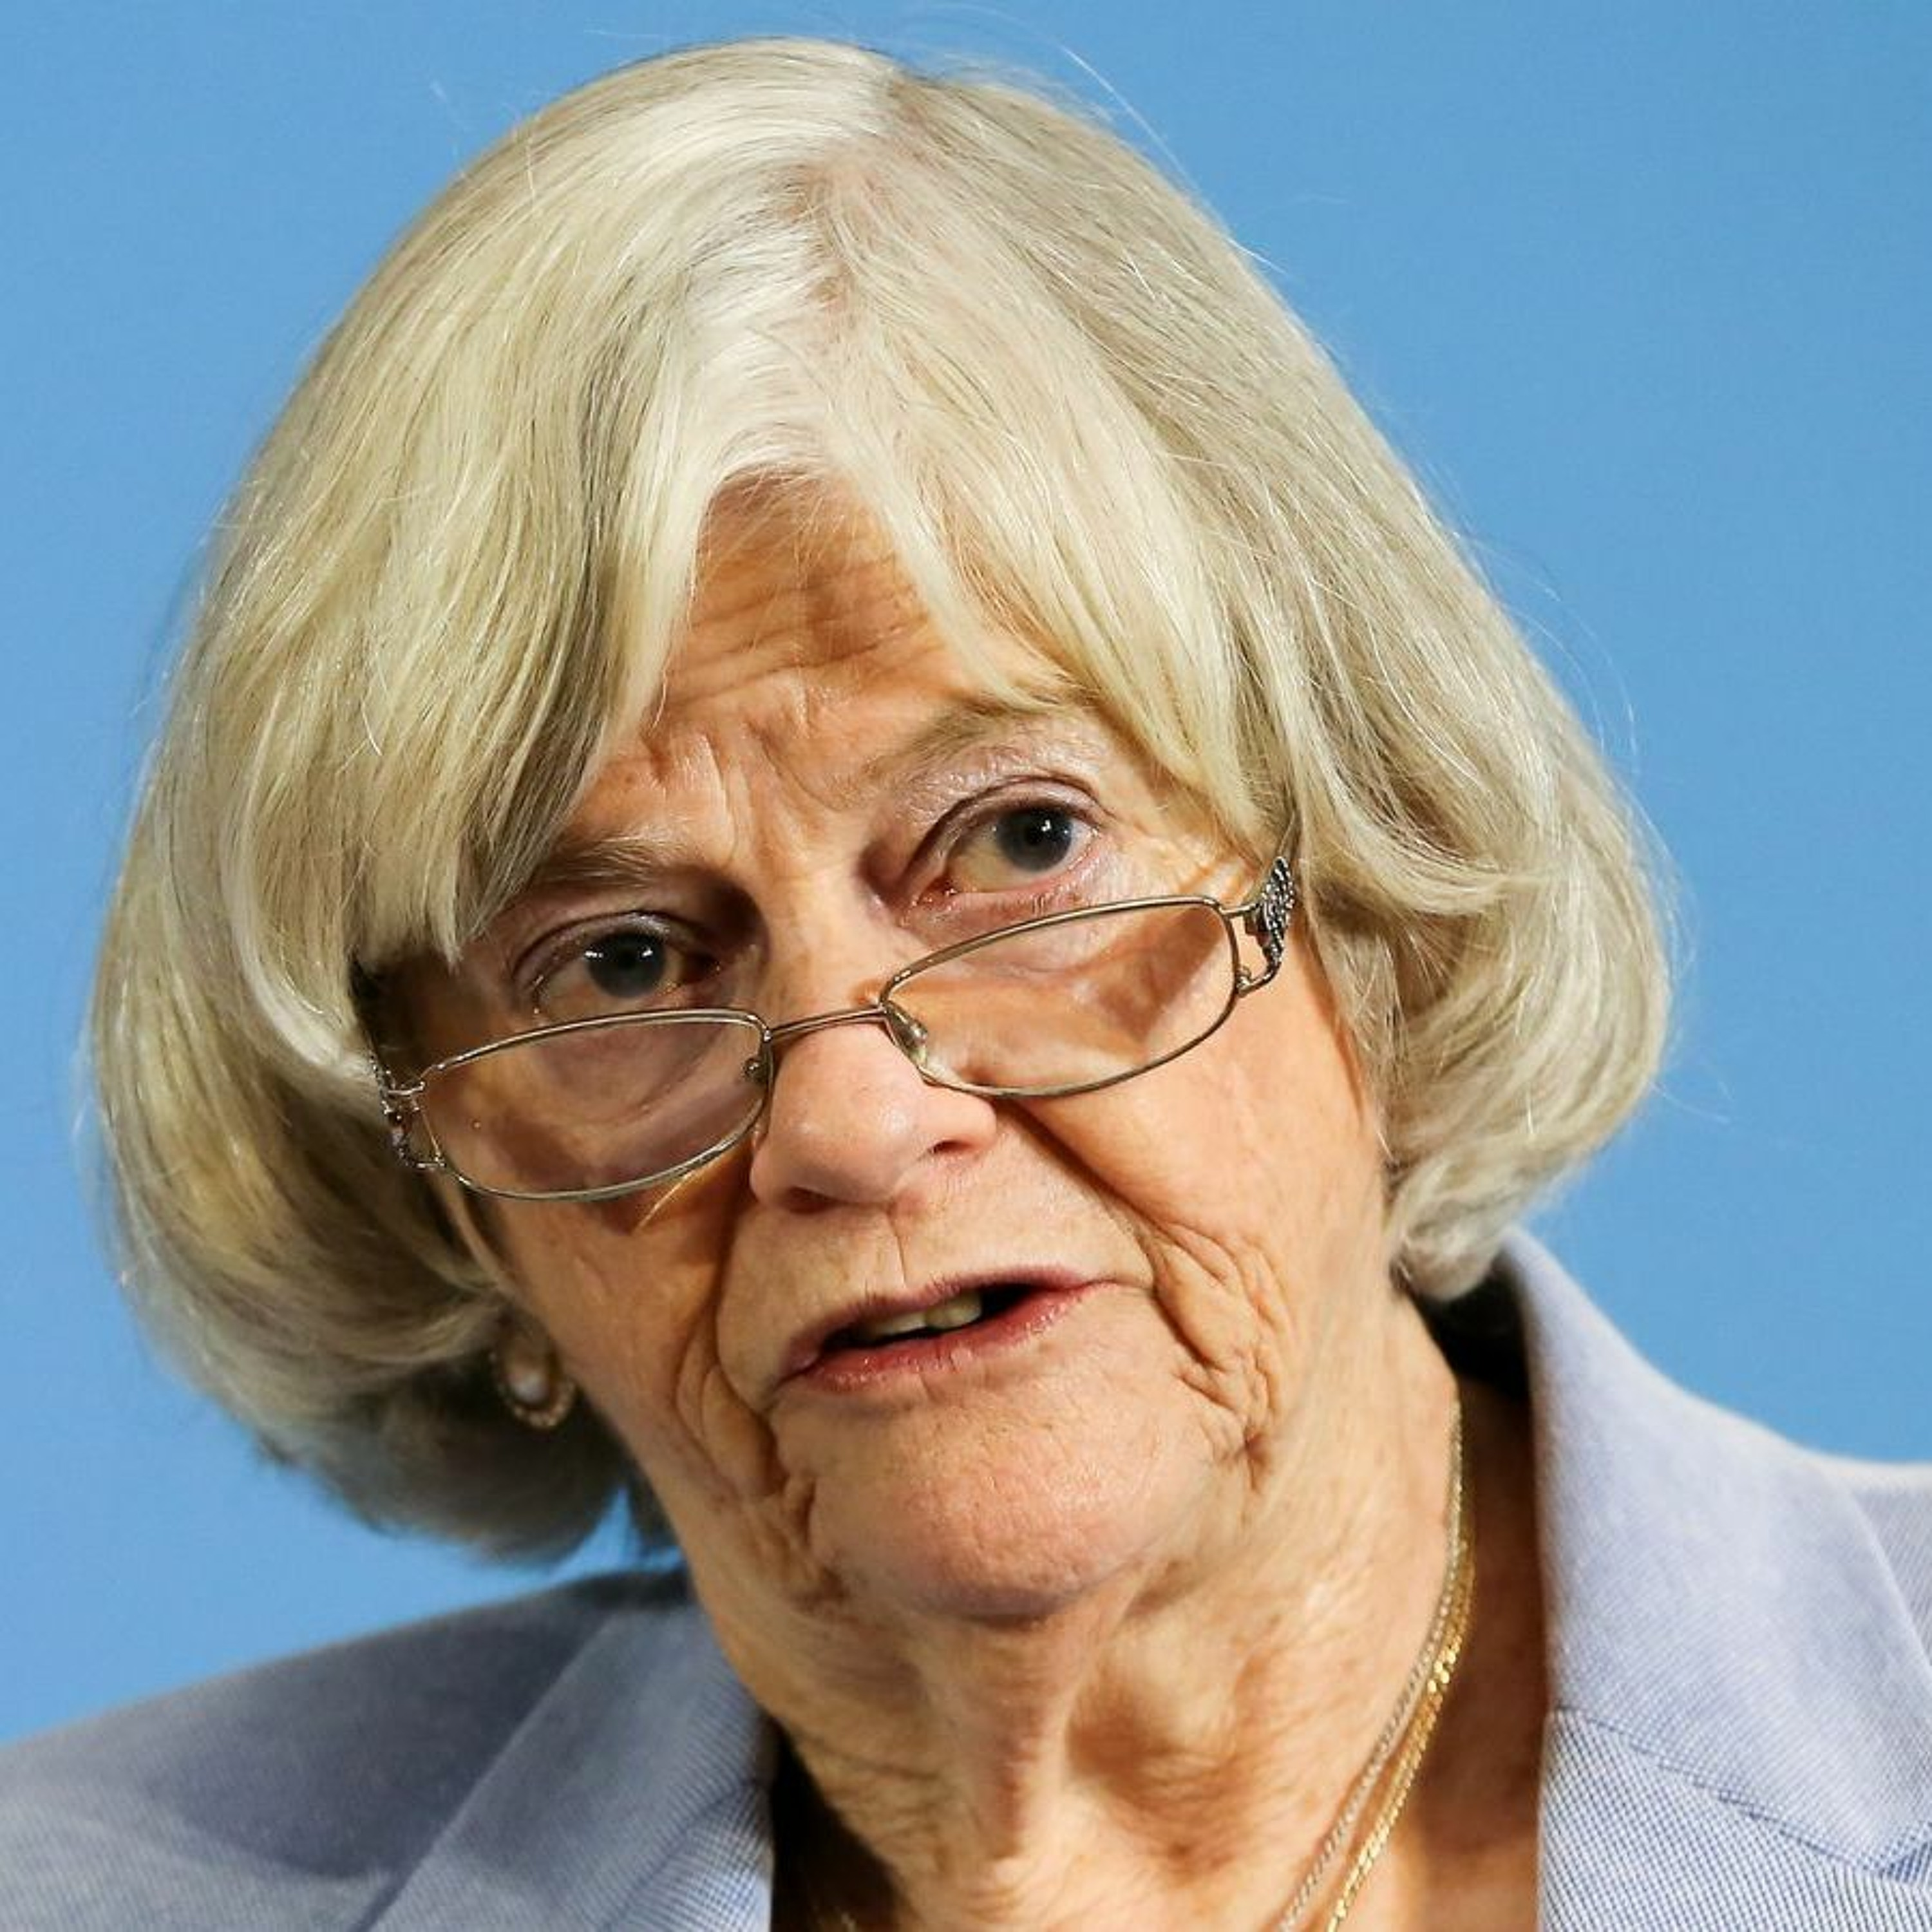 Ann Widdecombe: We're Fed Up With Woke Minority Bullies + Labour's Lost Touch With Reality